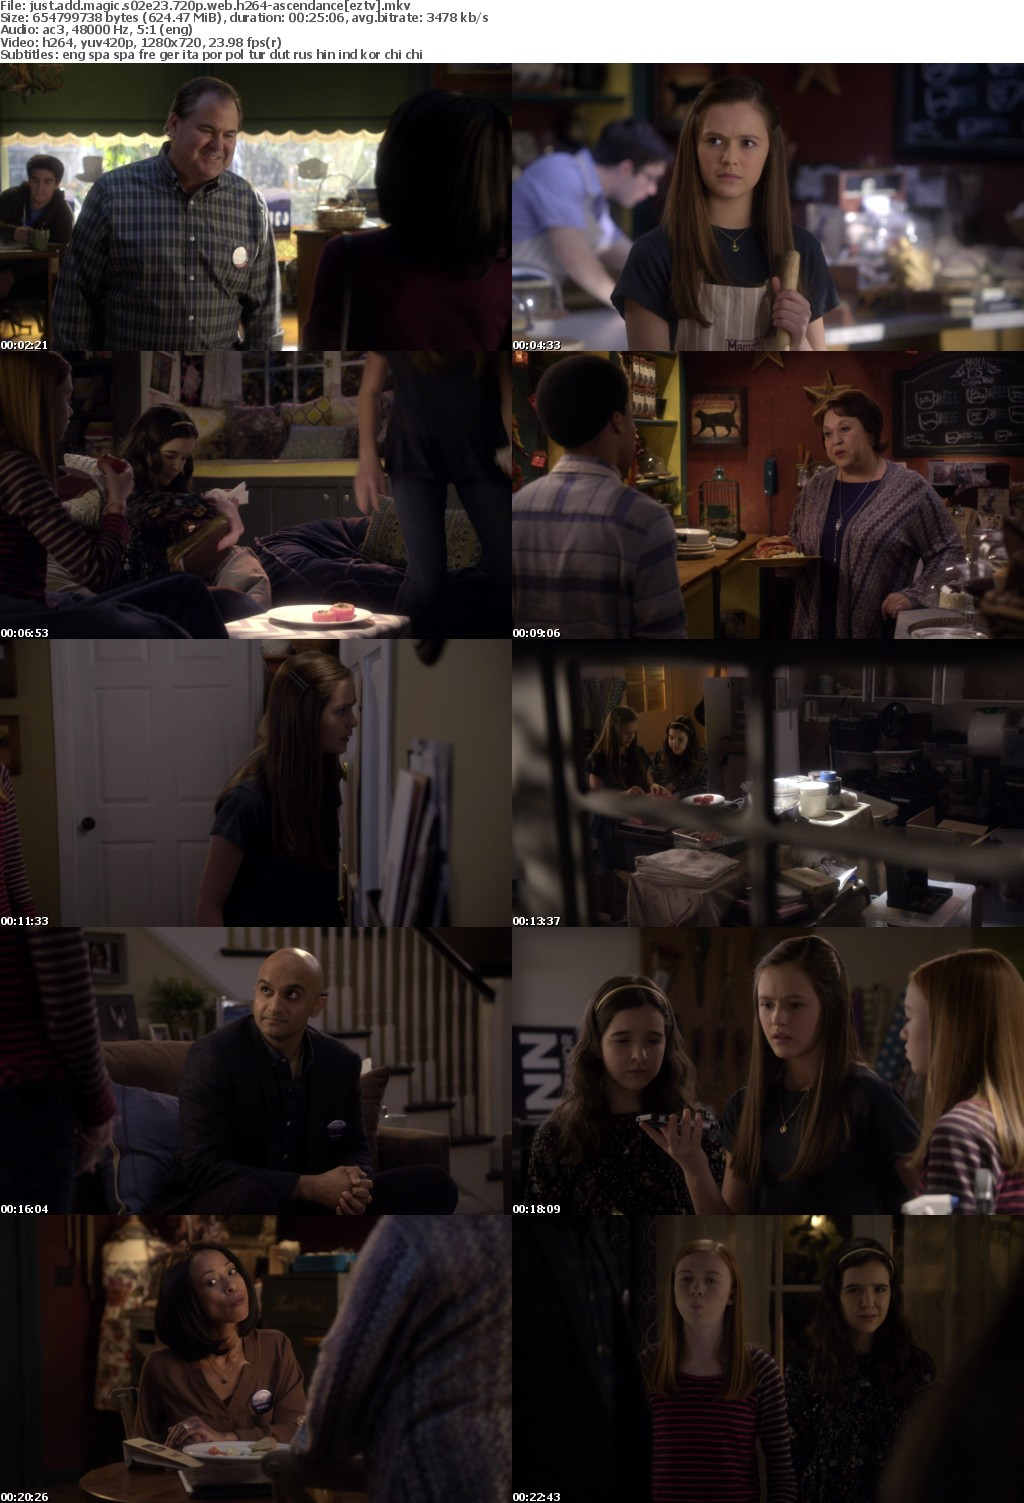 Just Add Magic S02E23 720p WEB h264-ASCENDANCE